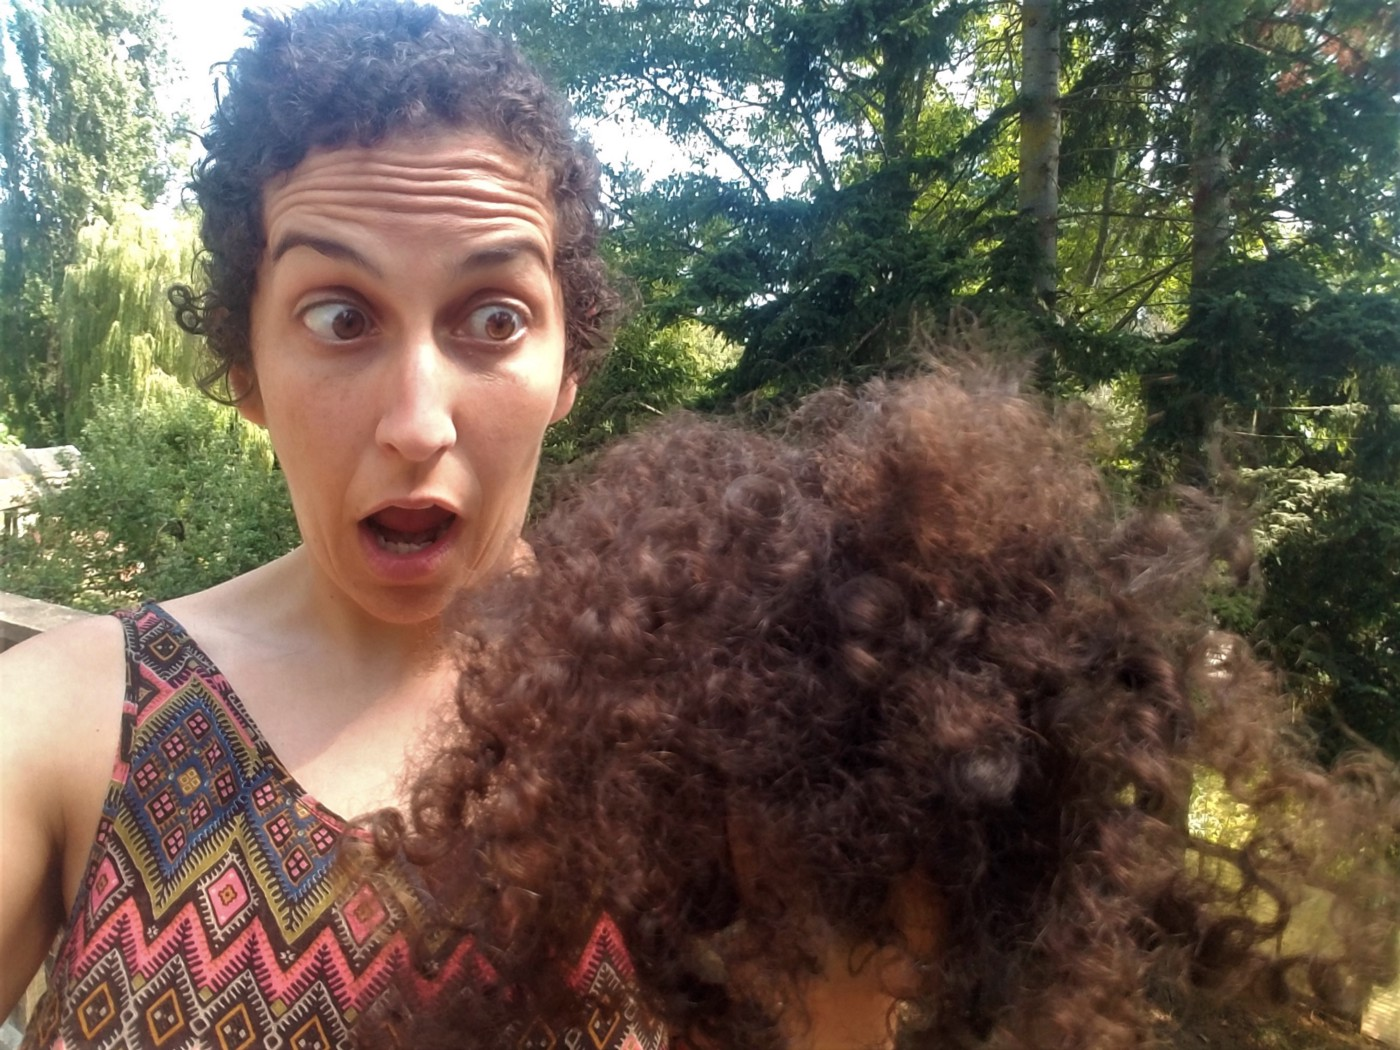 Author with short hair making a funny shocked face looking at her cut-off brown curly hair.